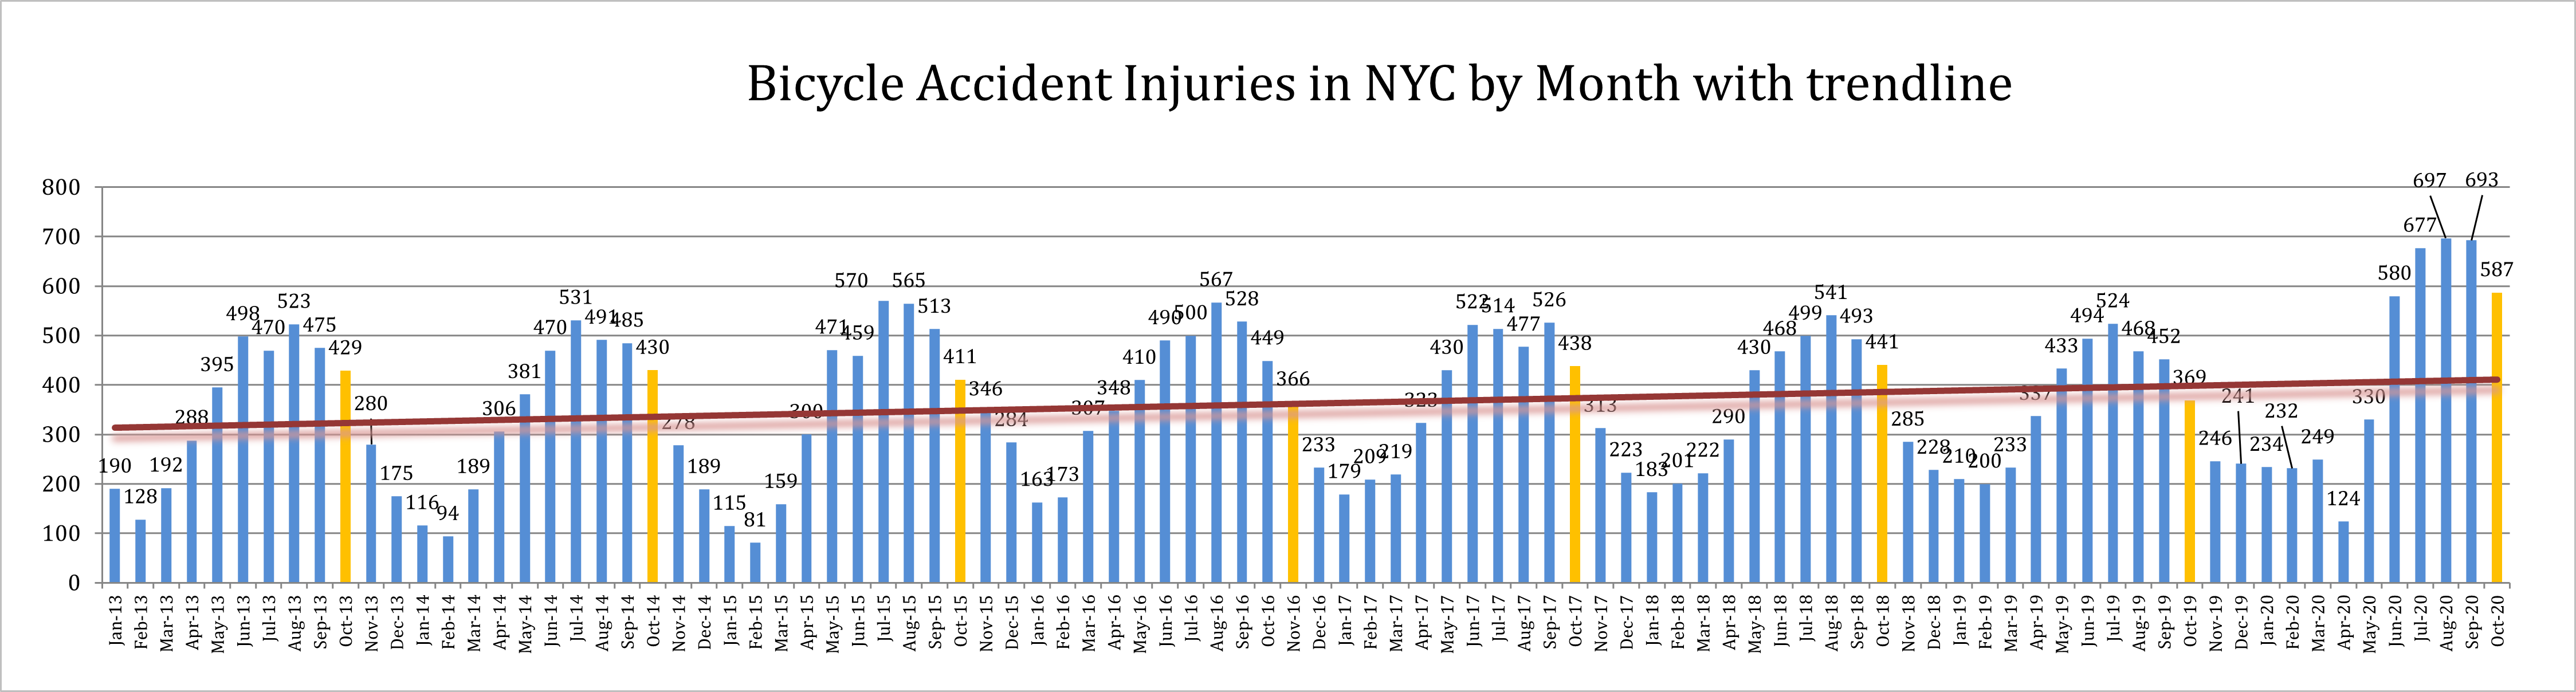 bicycle accident injuries in October 2020 in New York City